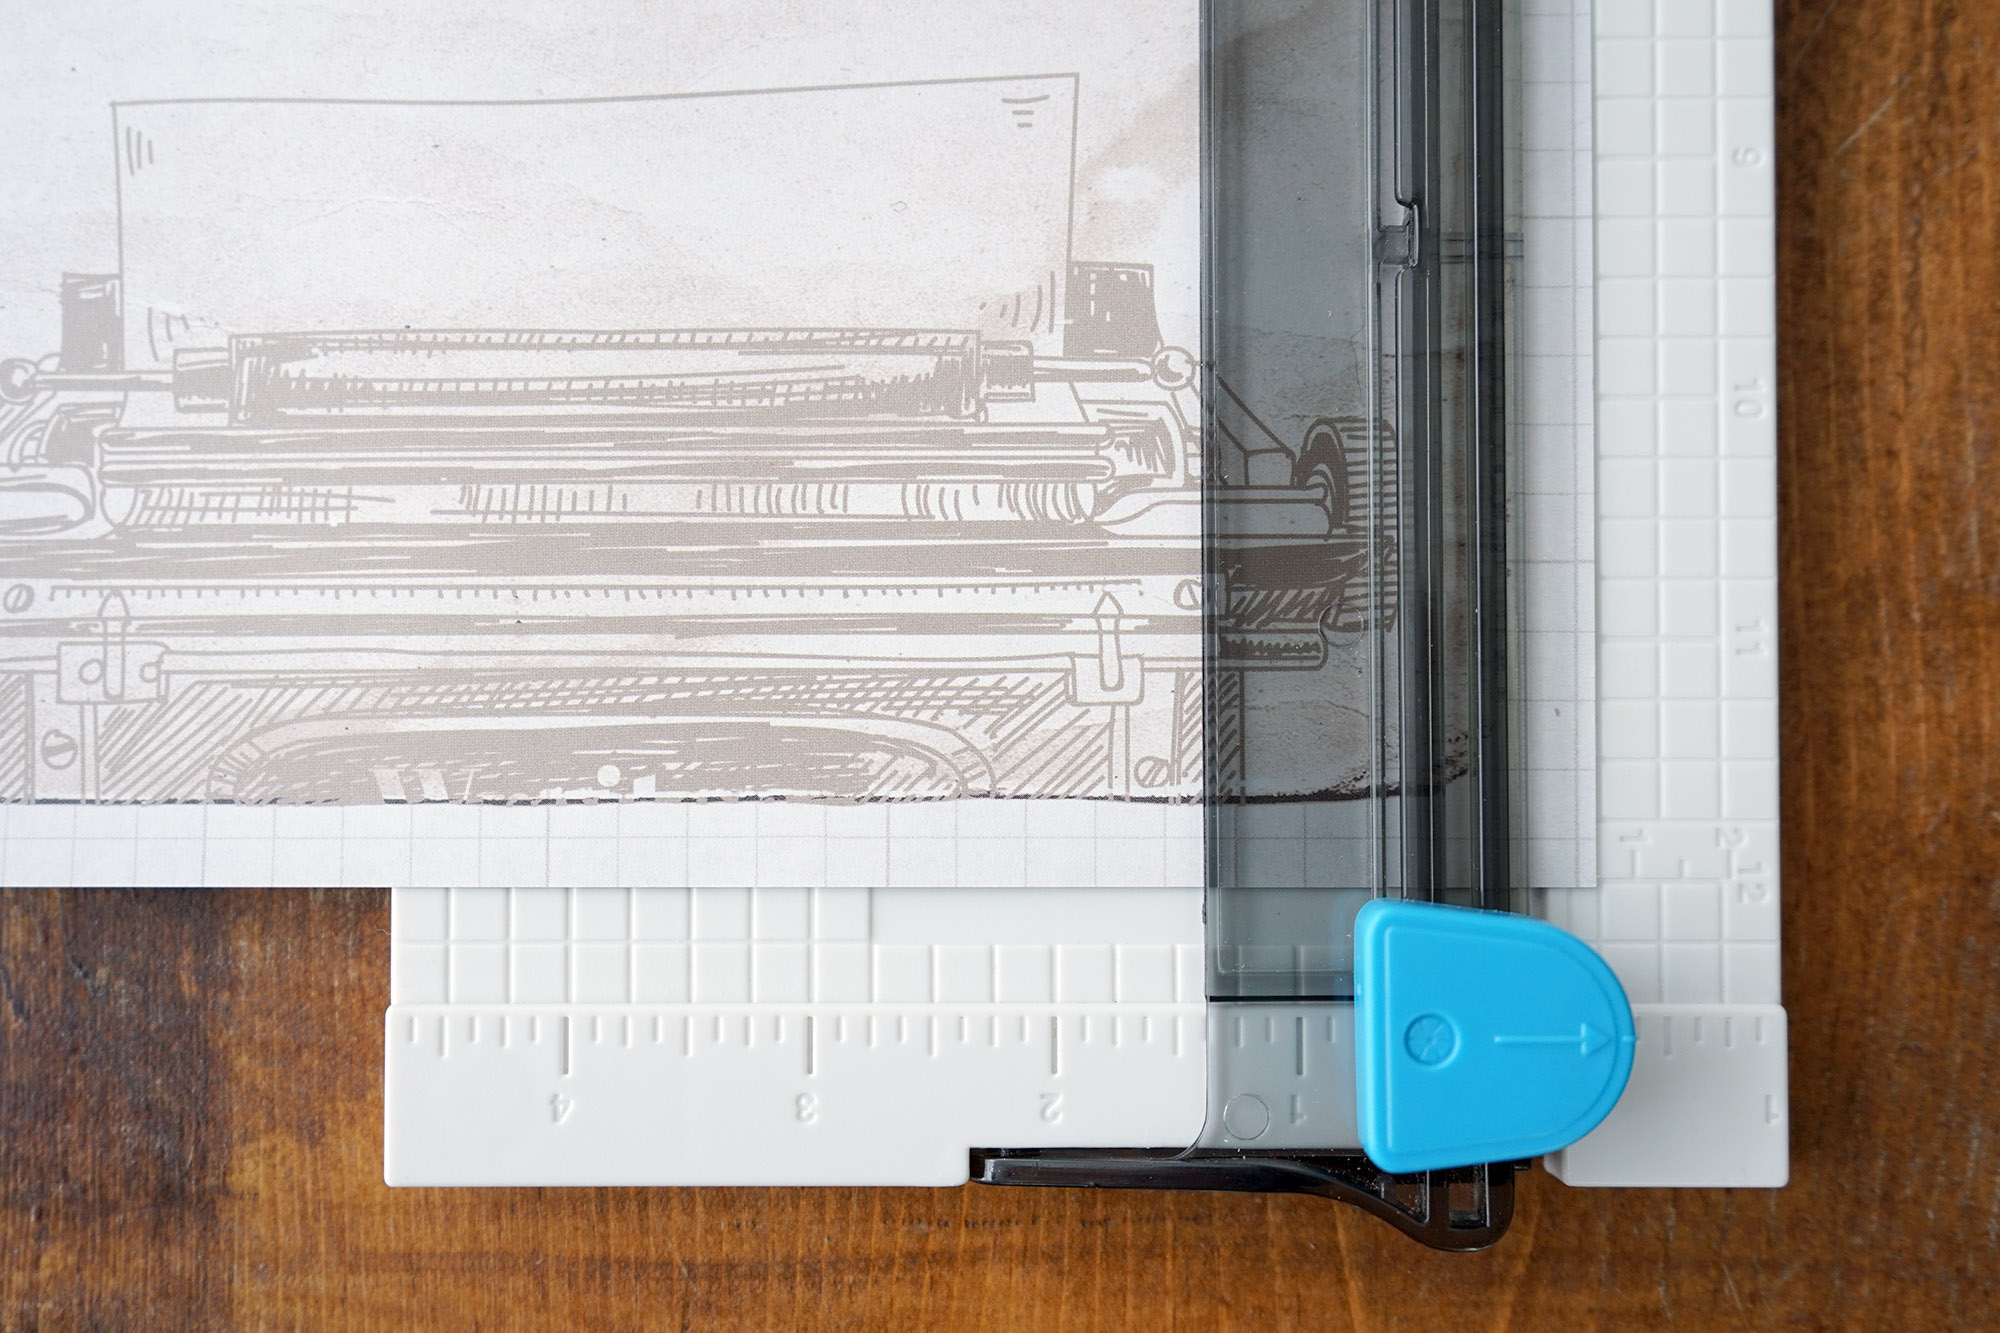 12-inch Trimmer with Typewriter paper